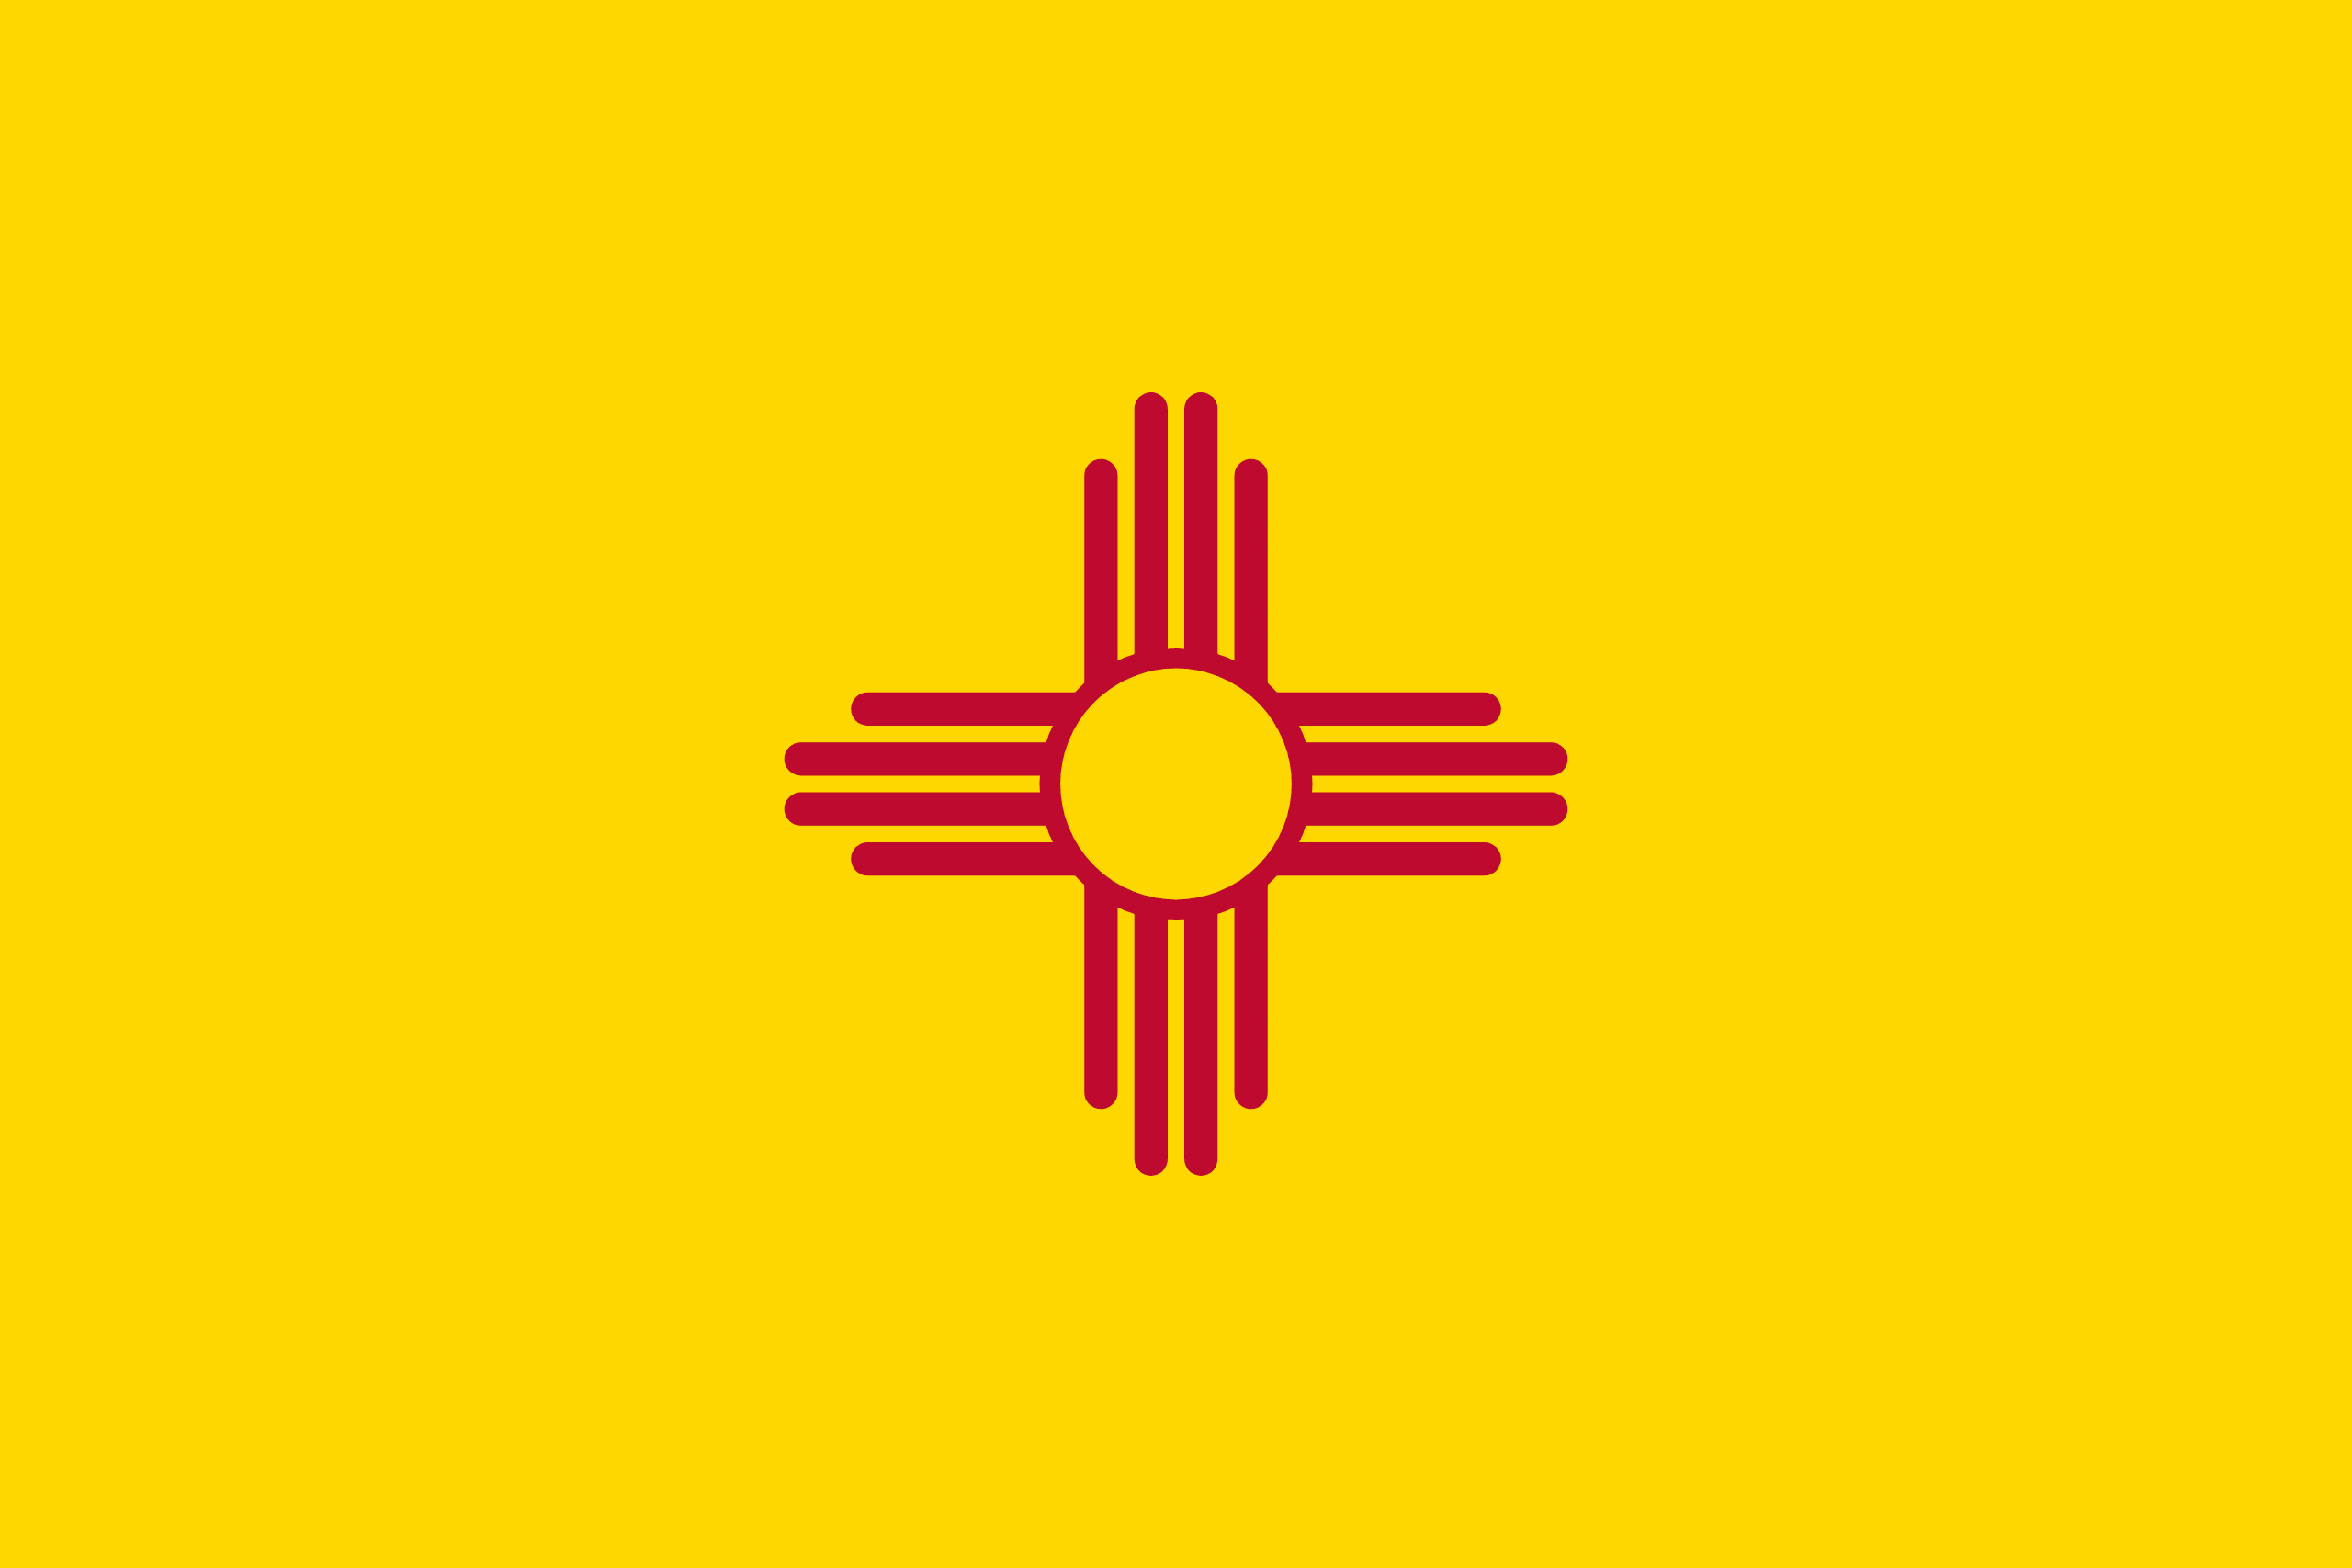 New Mexico License Plate Lookup